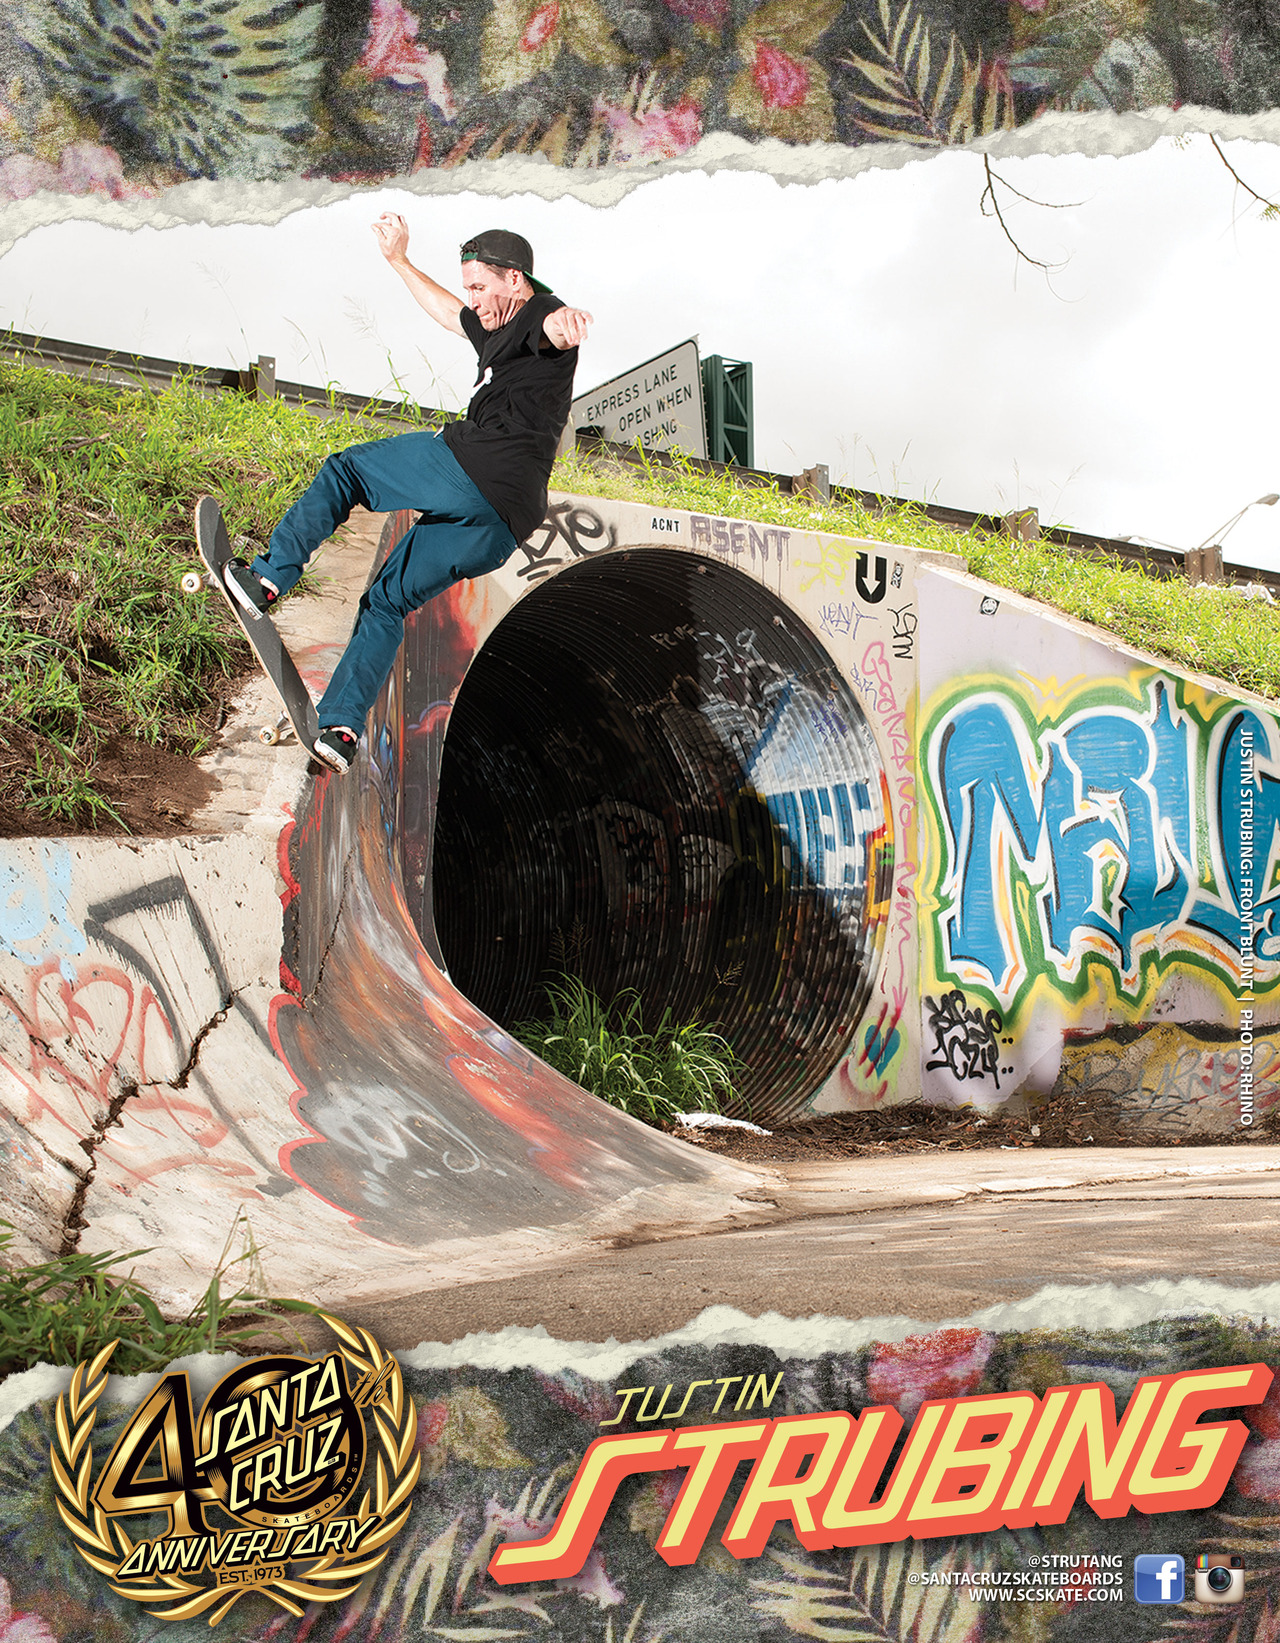 SANTA CRUZ SKATEBOARDS - STRUBING